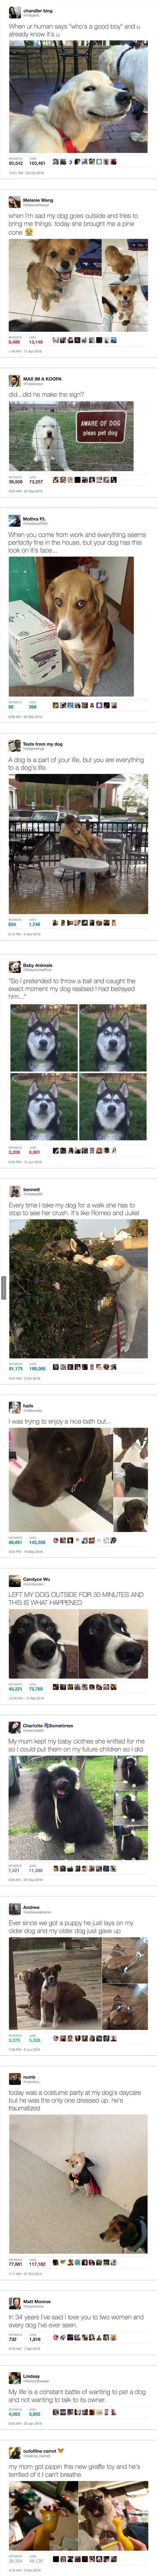 15 Of The Best Dog Tweets Of 2016 - The Best Funny Pictures